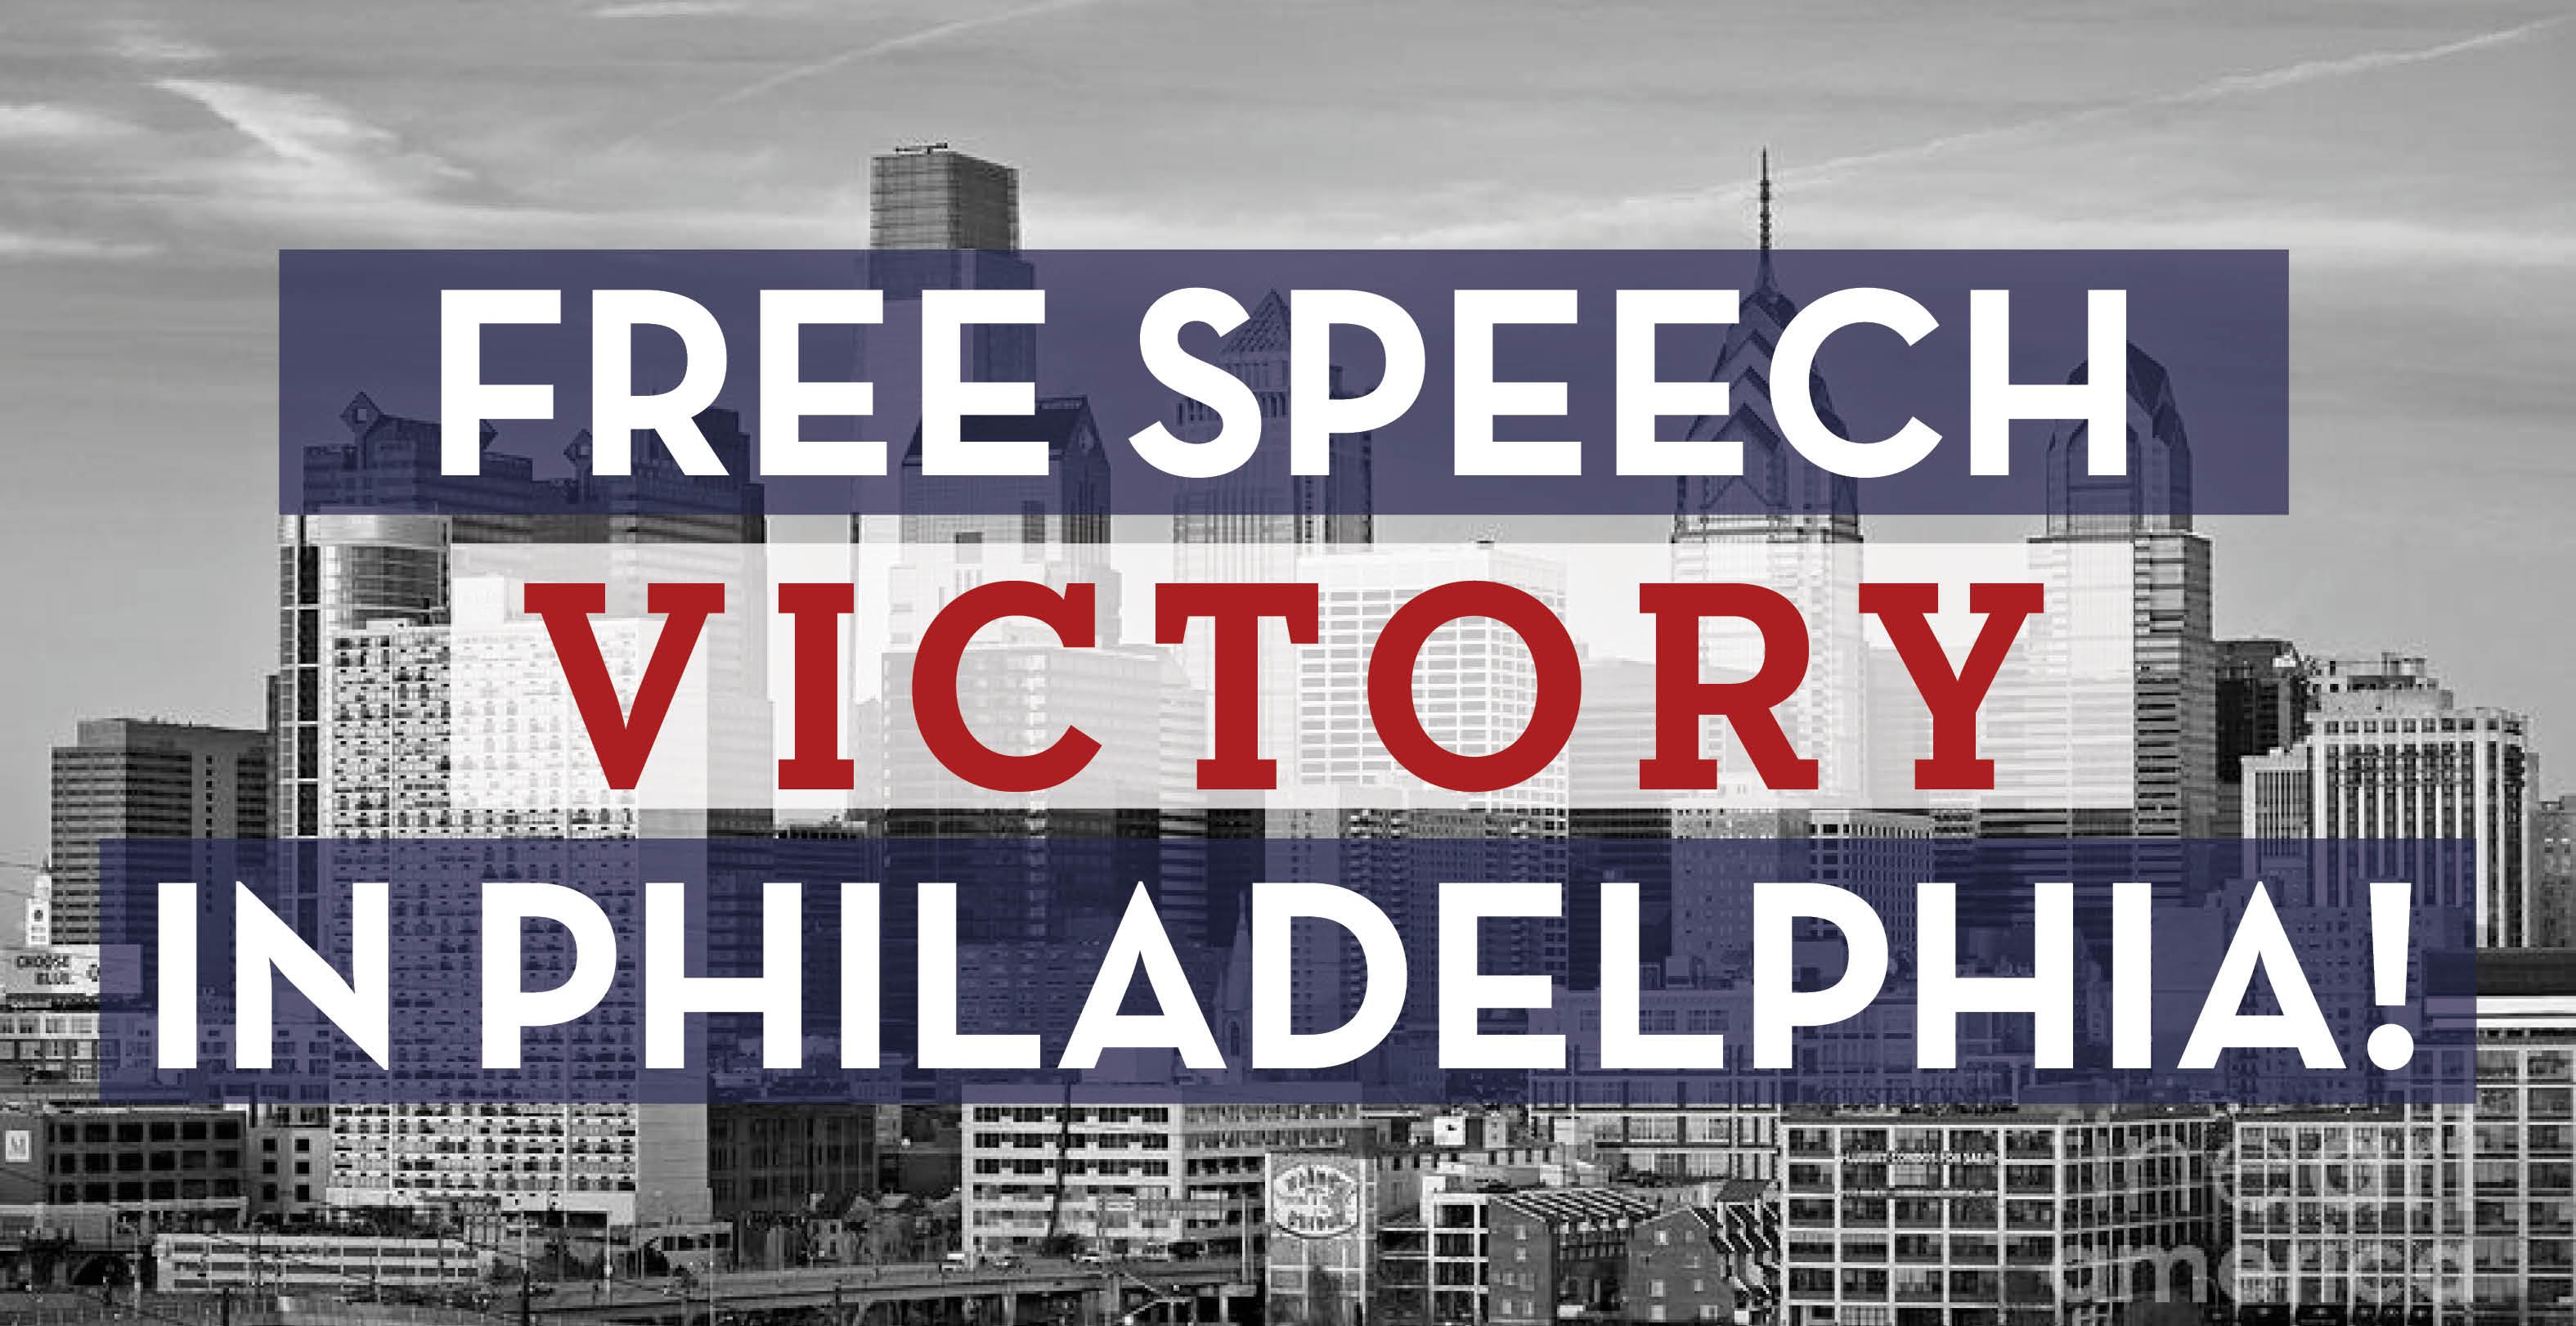 Free Speech Victory in Philly!